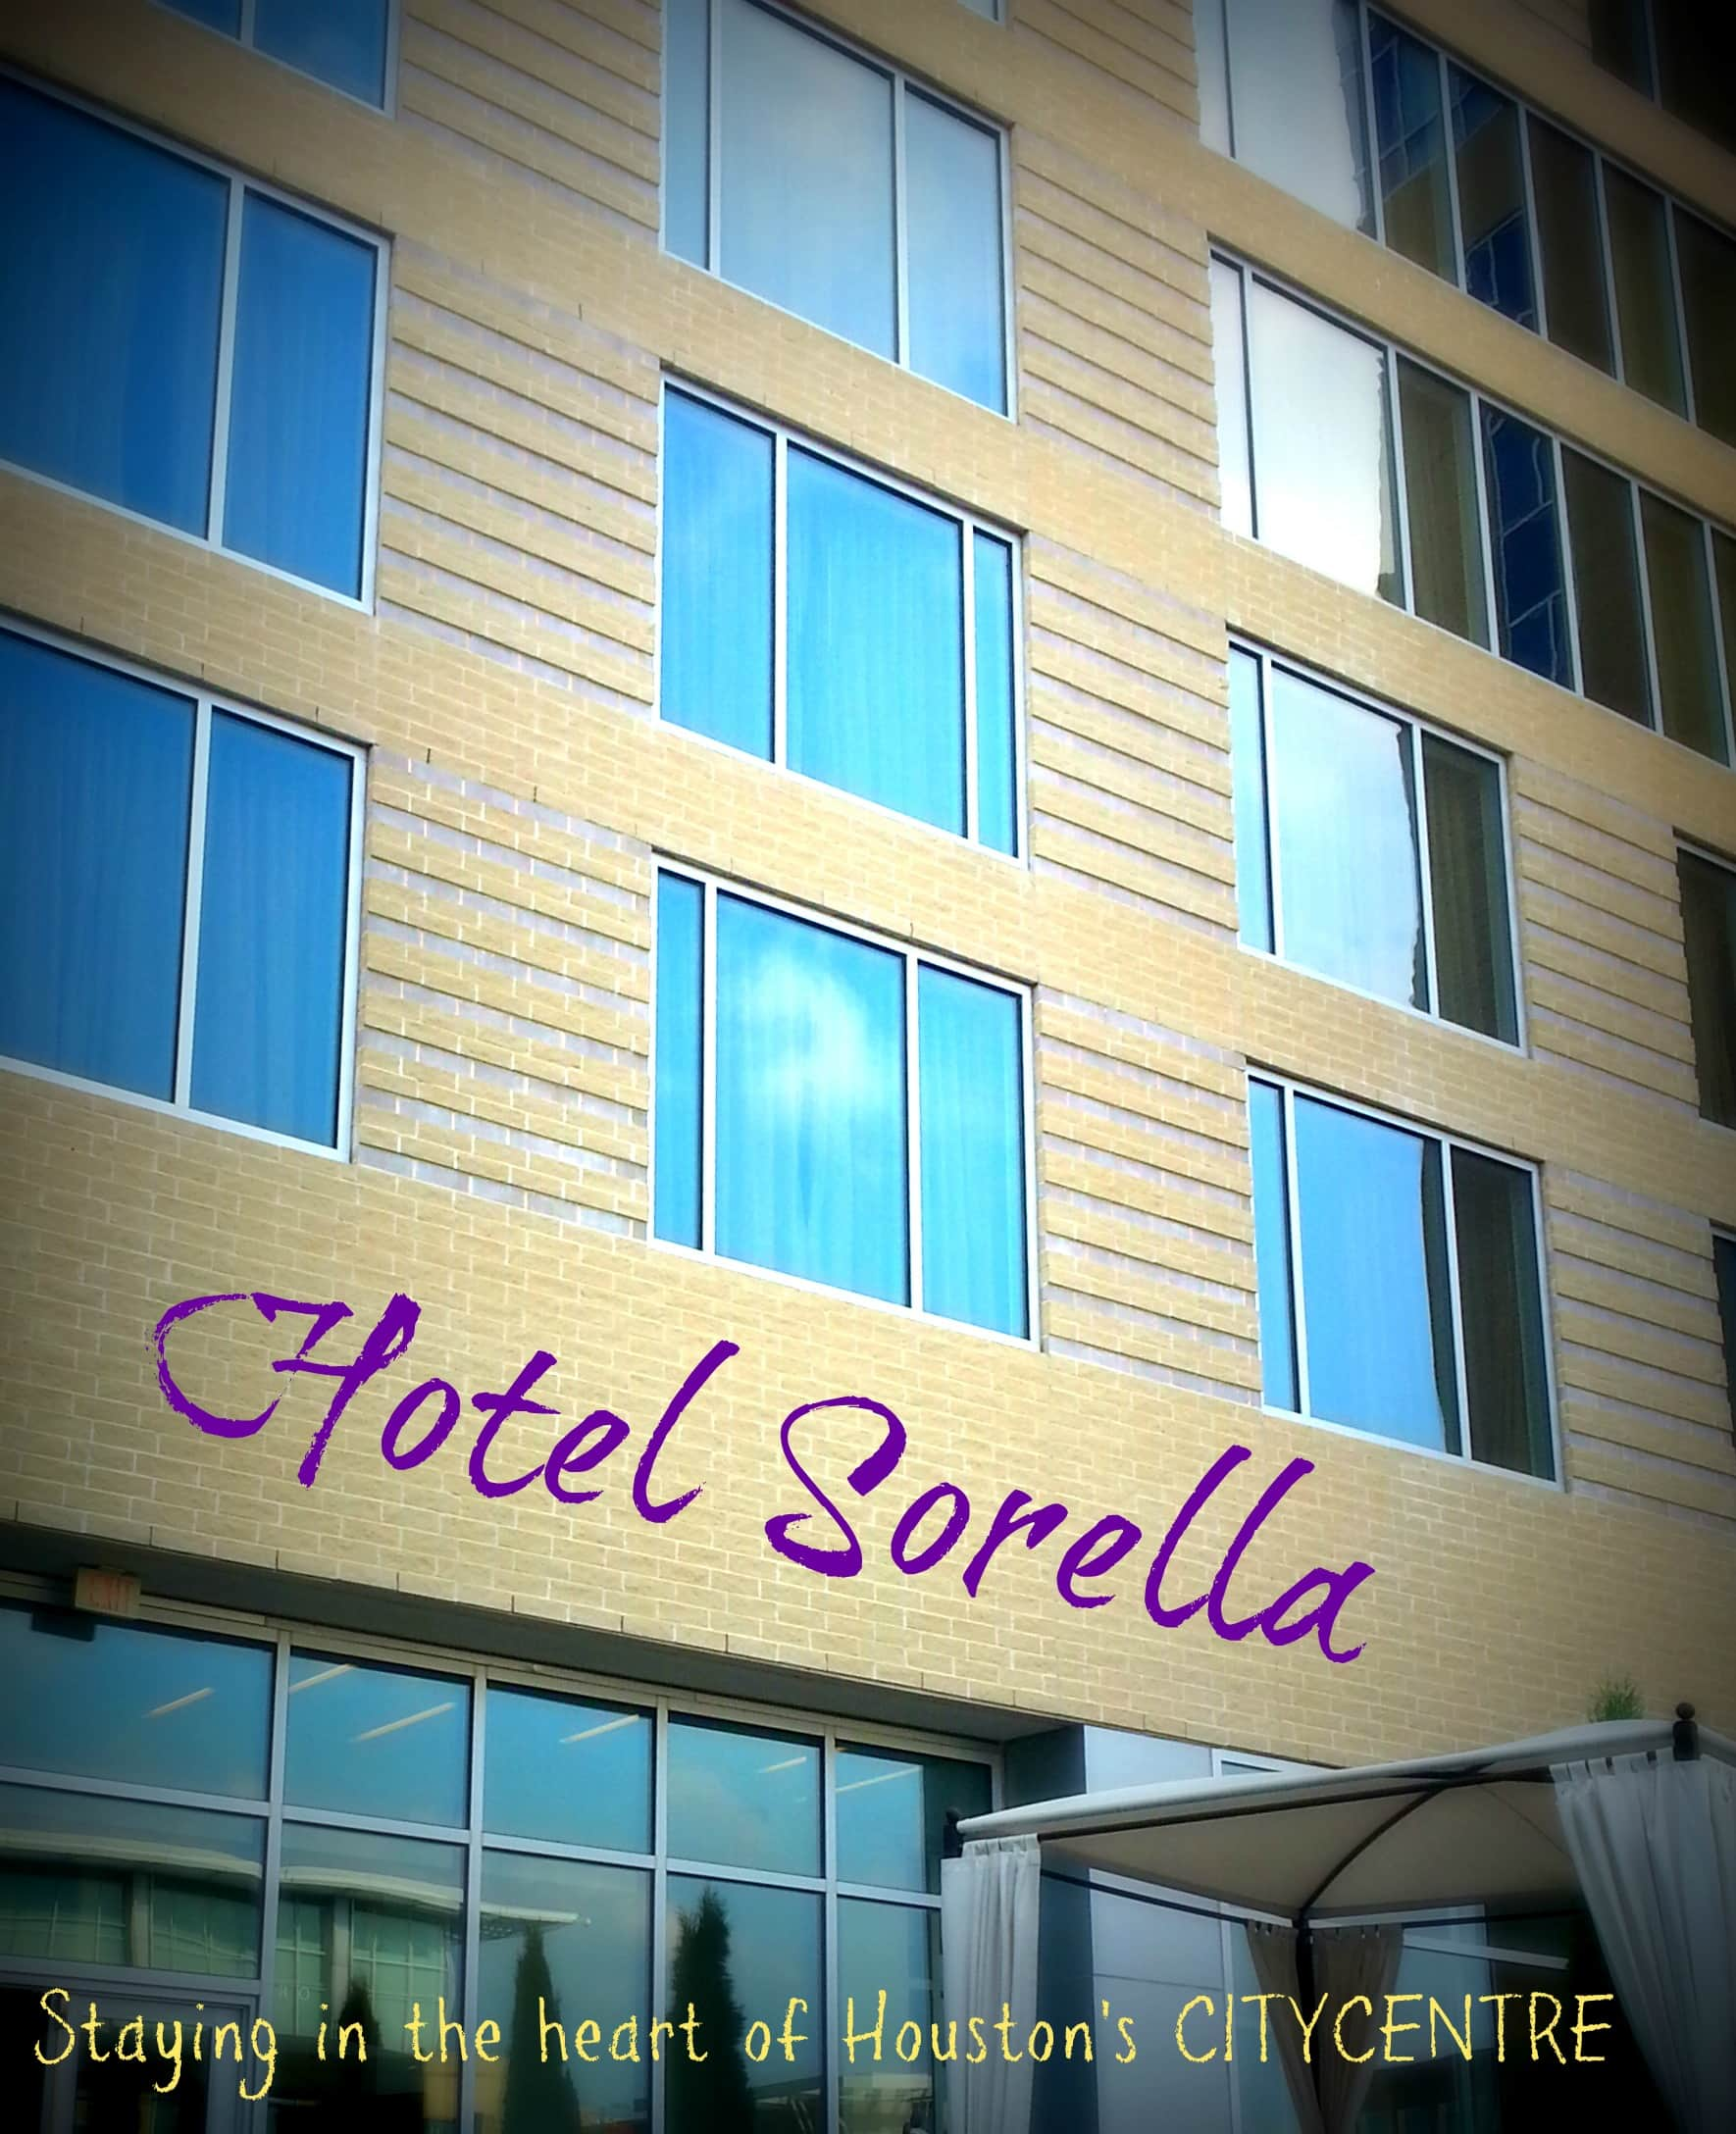 Hotel Sorella...Staying in the heart of Houston's CITYCENTRE